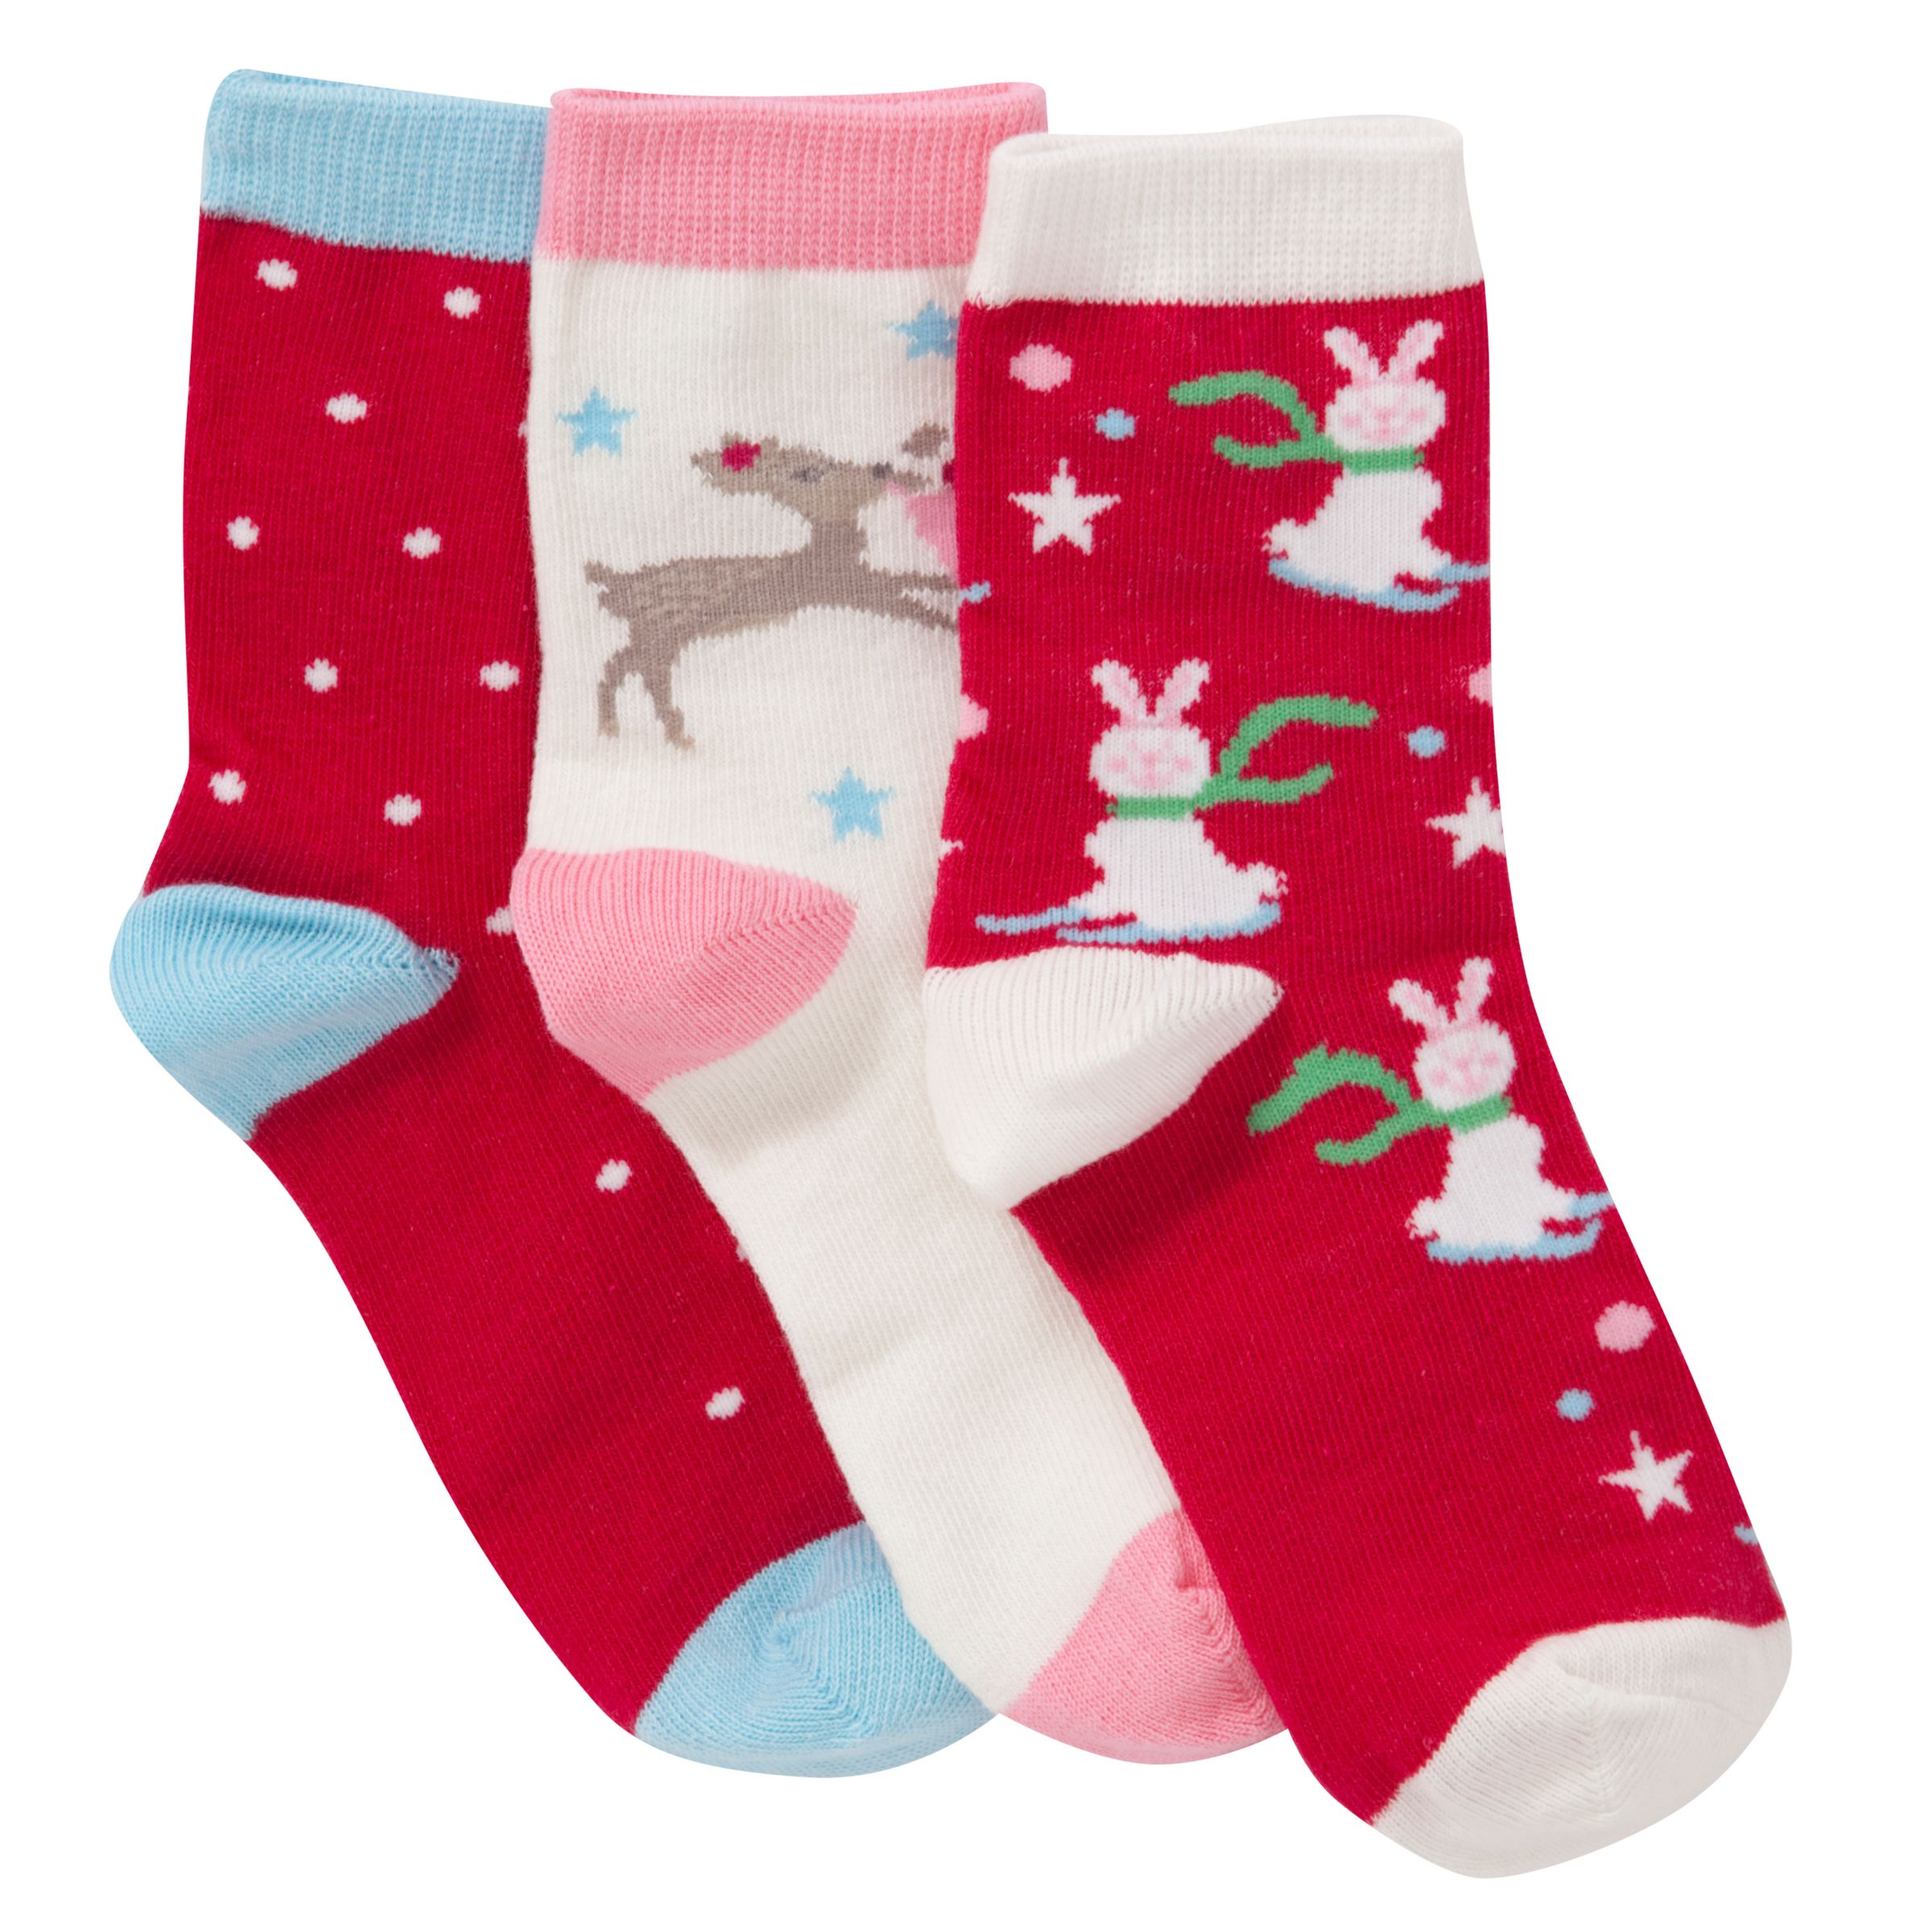 John Lewis Girl Boxed Christmas Socks, Pack of 3, Multi